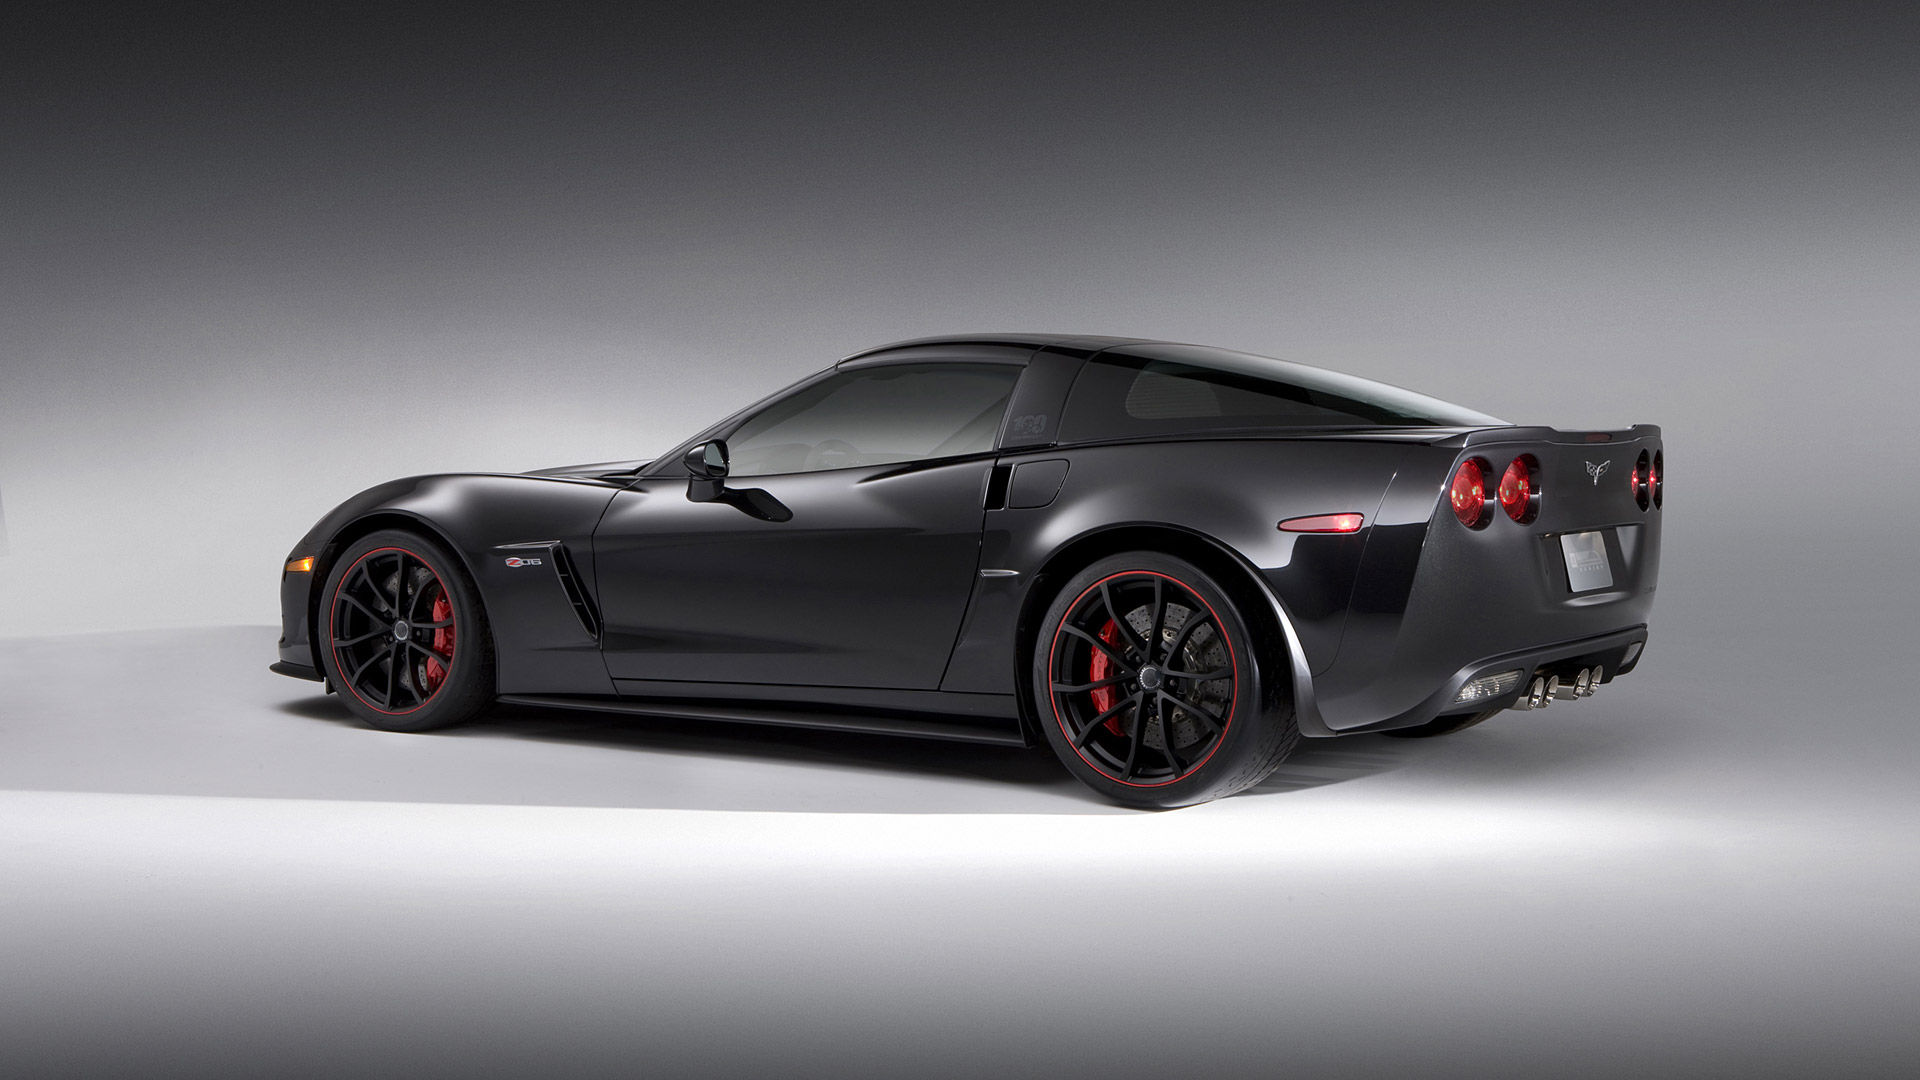 2011 Chevy Corvette Z06 Centennial Edition